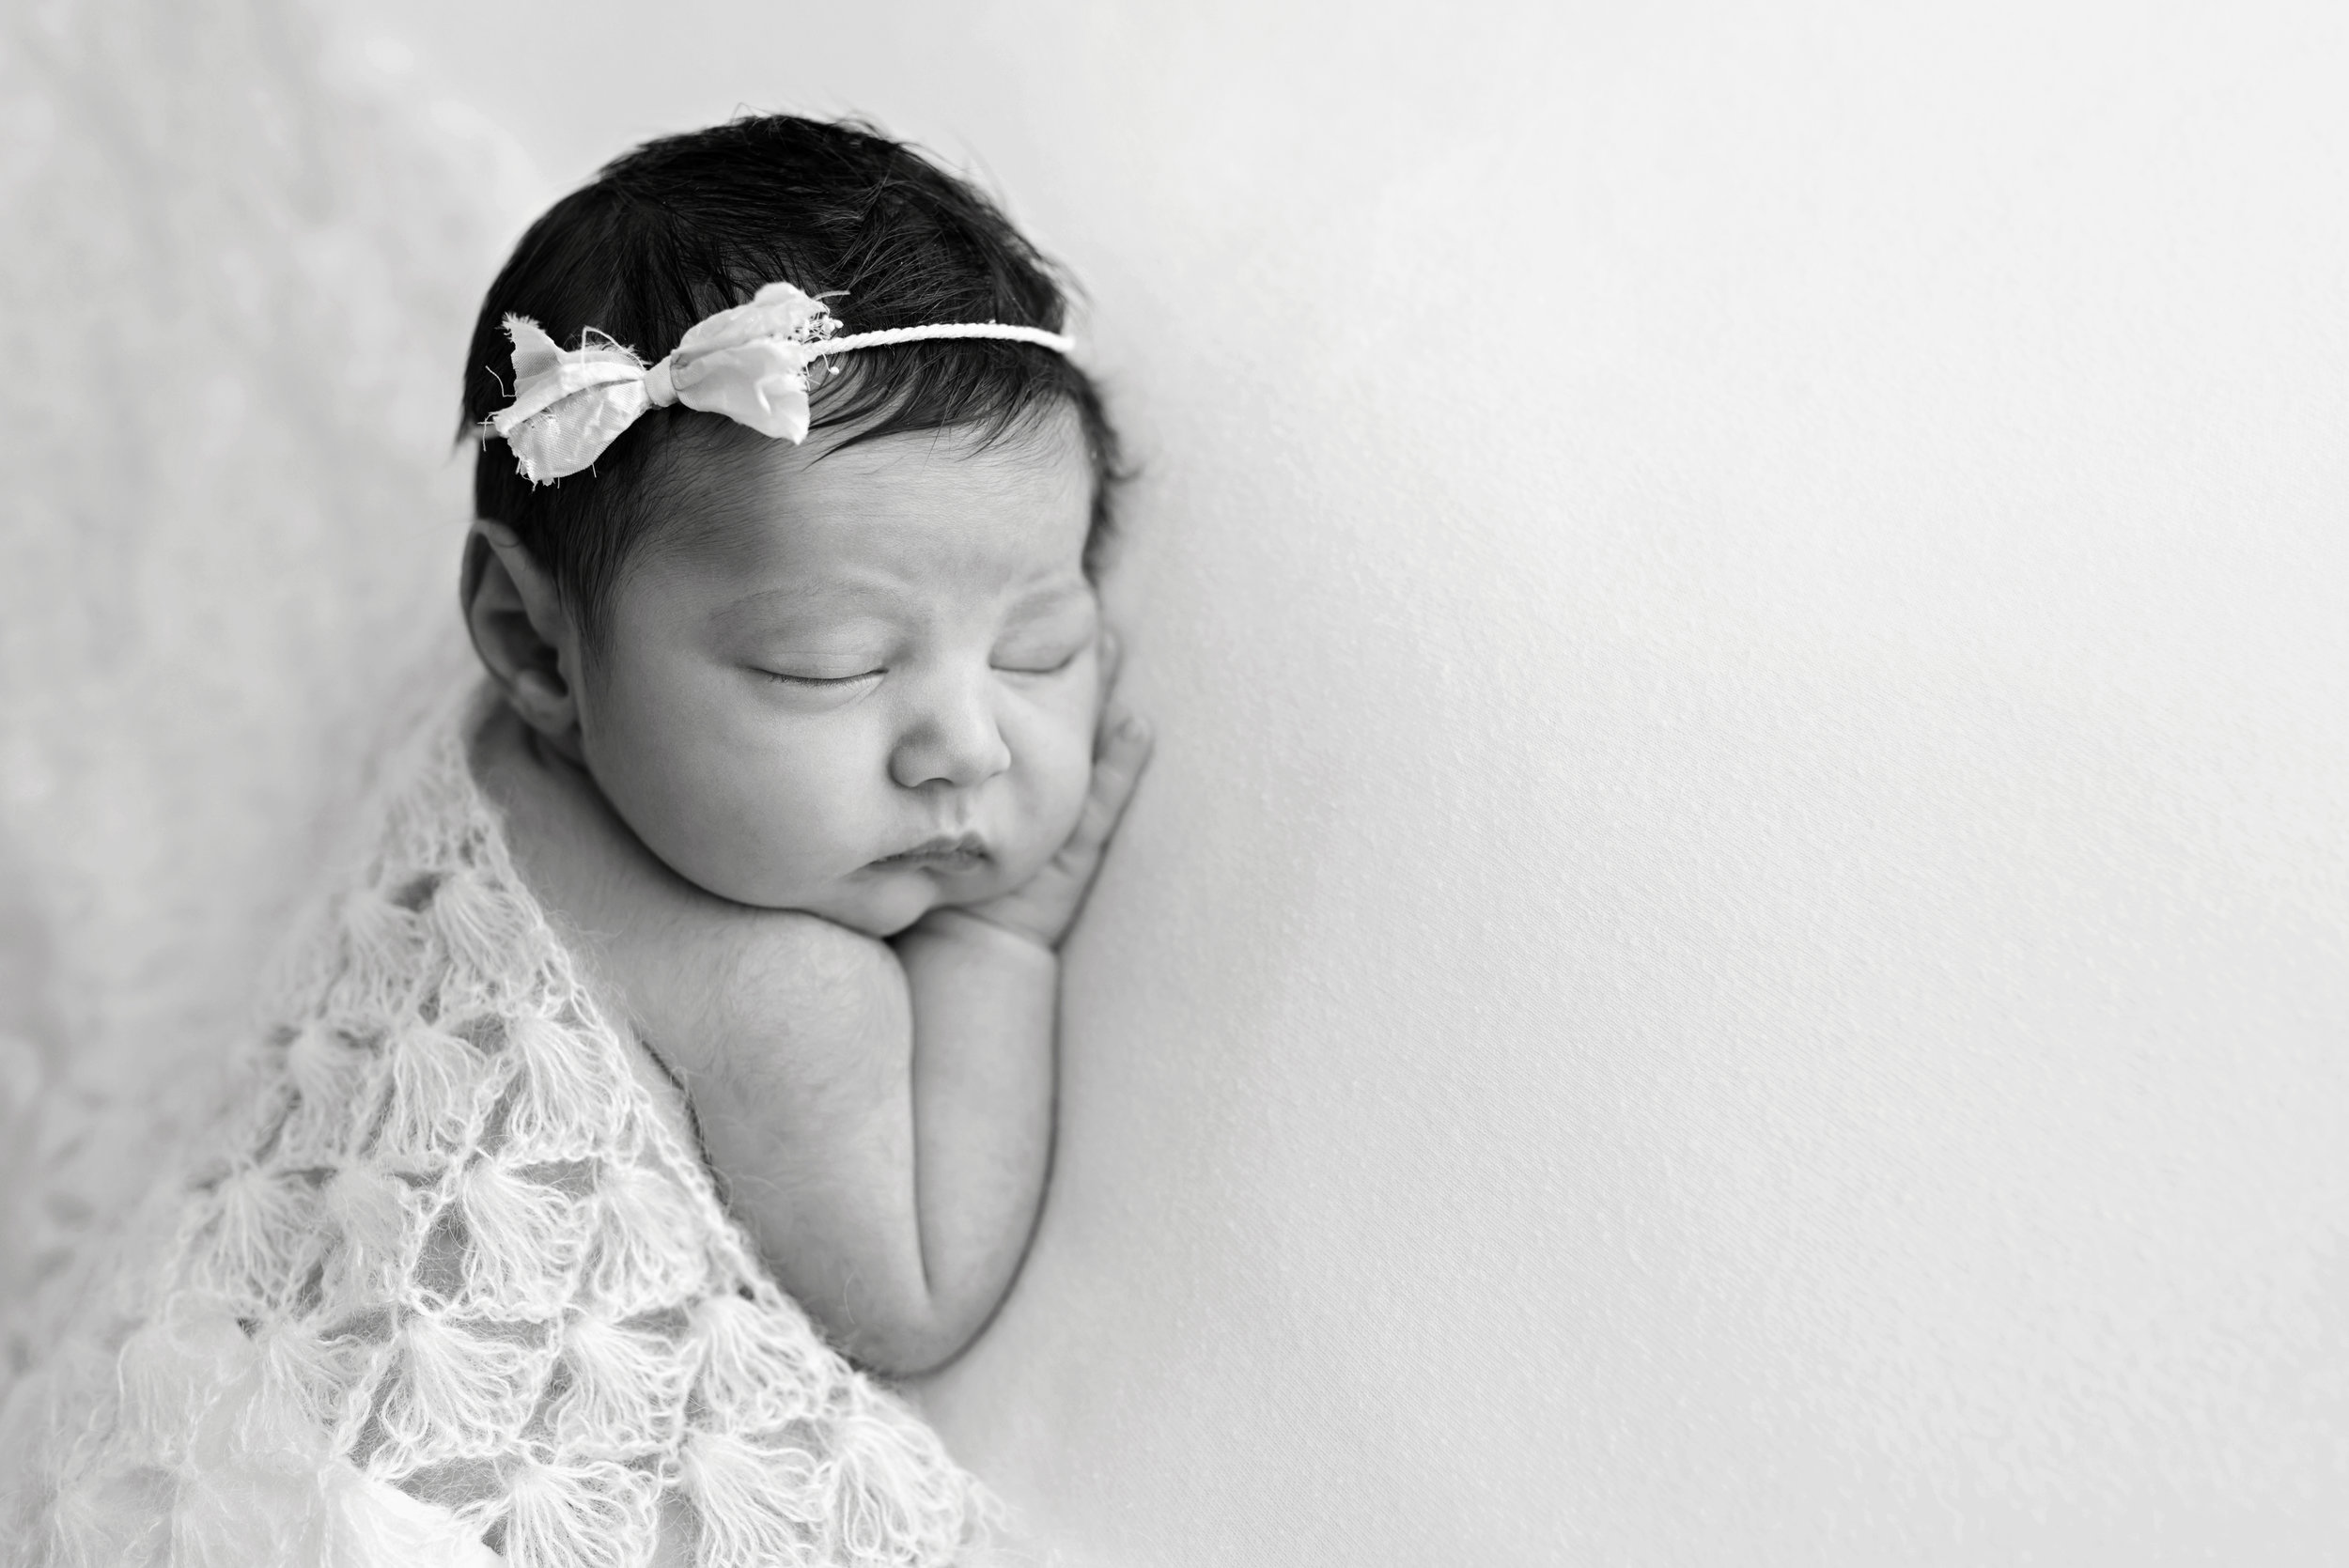 Charleston-Newborn-Photographer-Following-Seas-Photography-5767BW copy.jpg